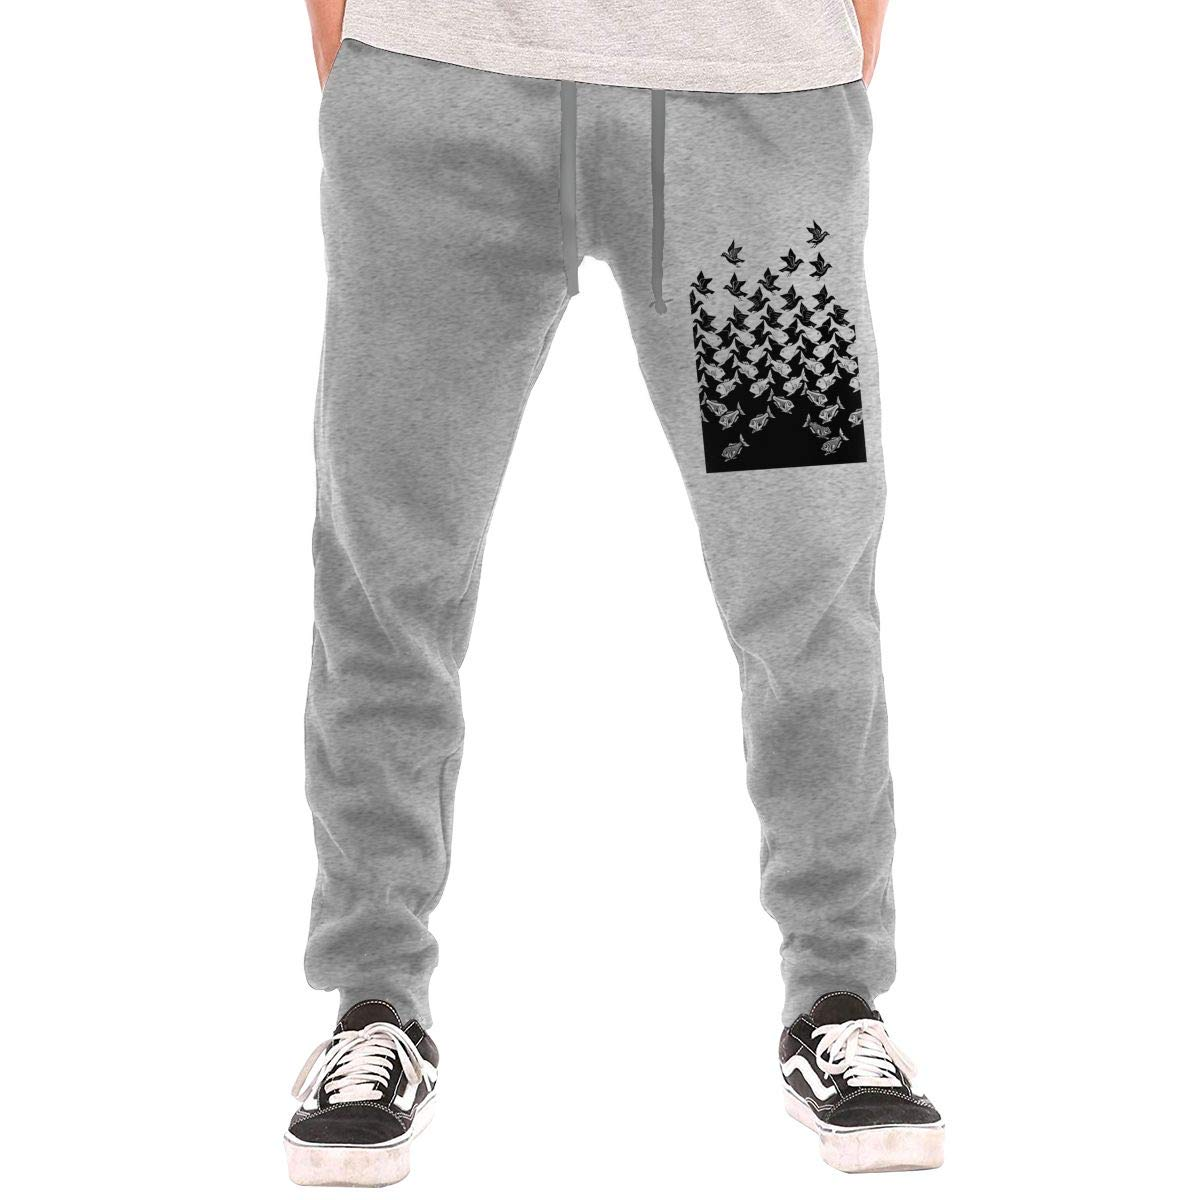 Mans Stylish Lounge Sleep Sweatpants Fish and Birds Art Deco Trousers with Pockets